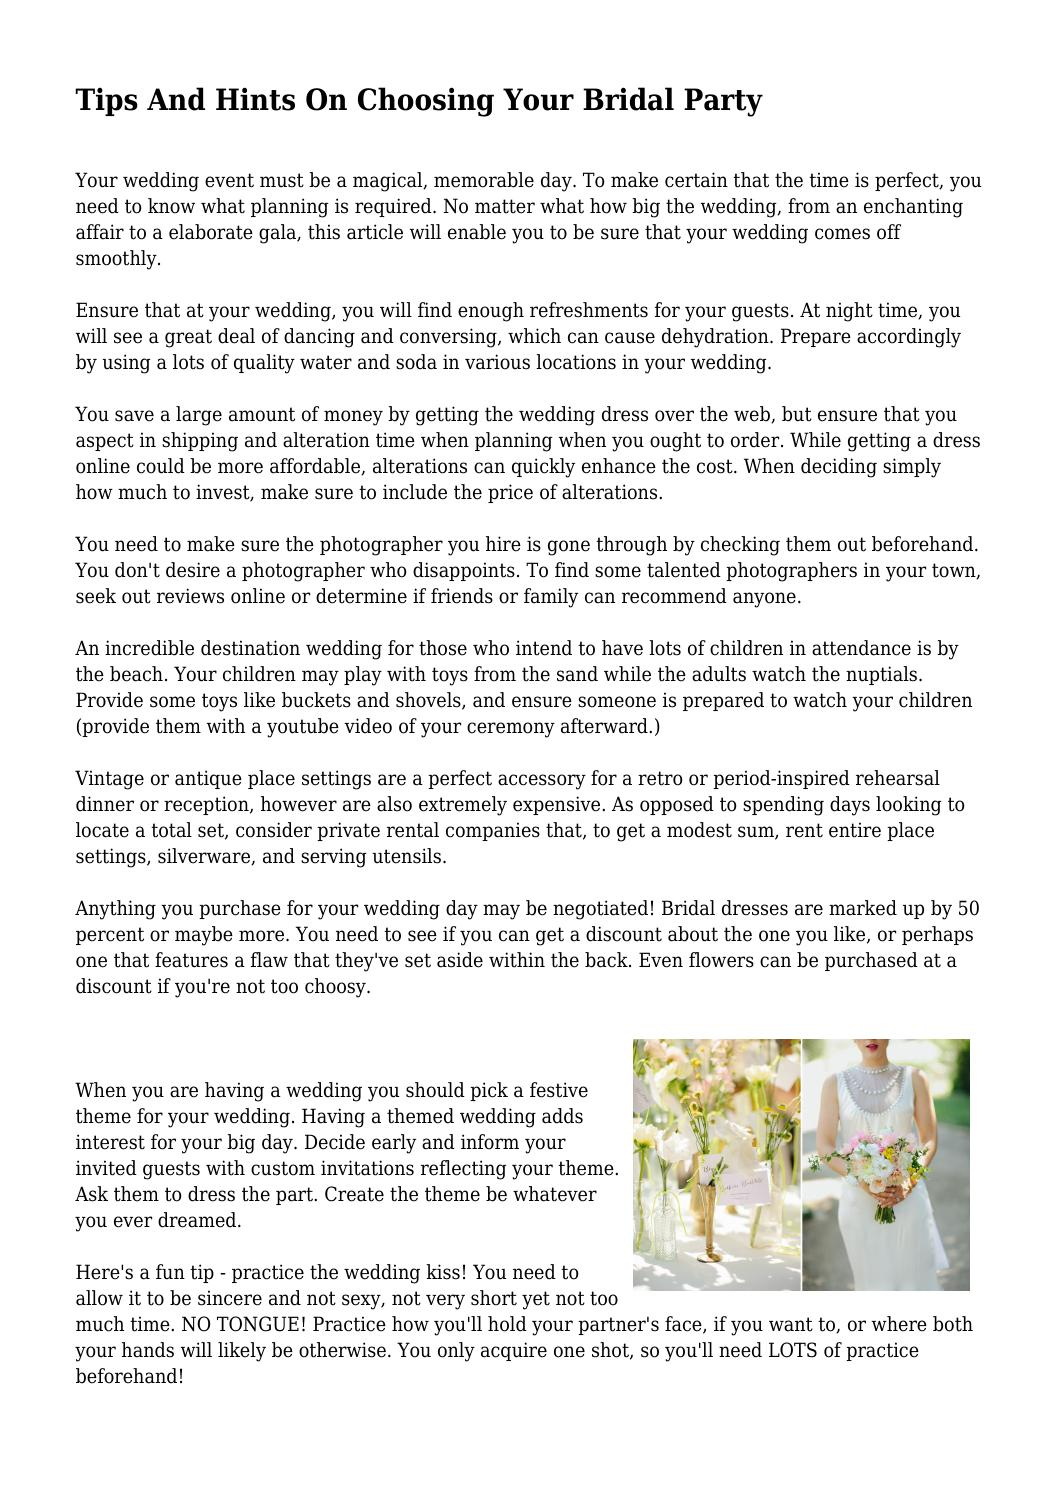 Tips And Hints On Choosing Your Bridal Party by kindheartedfore12 ...